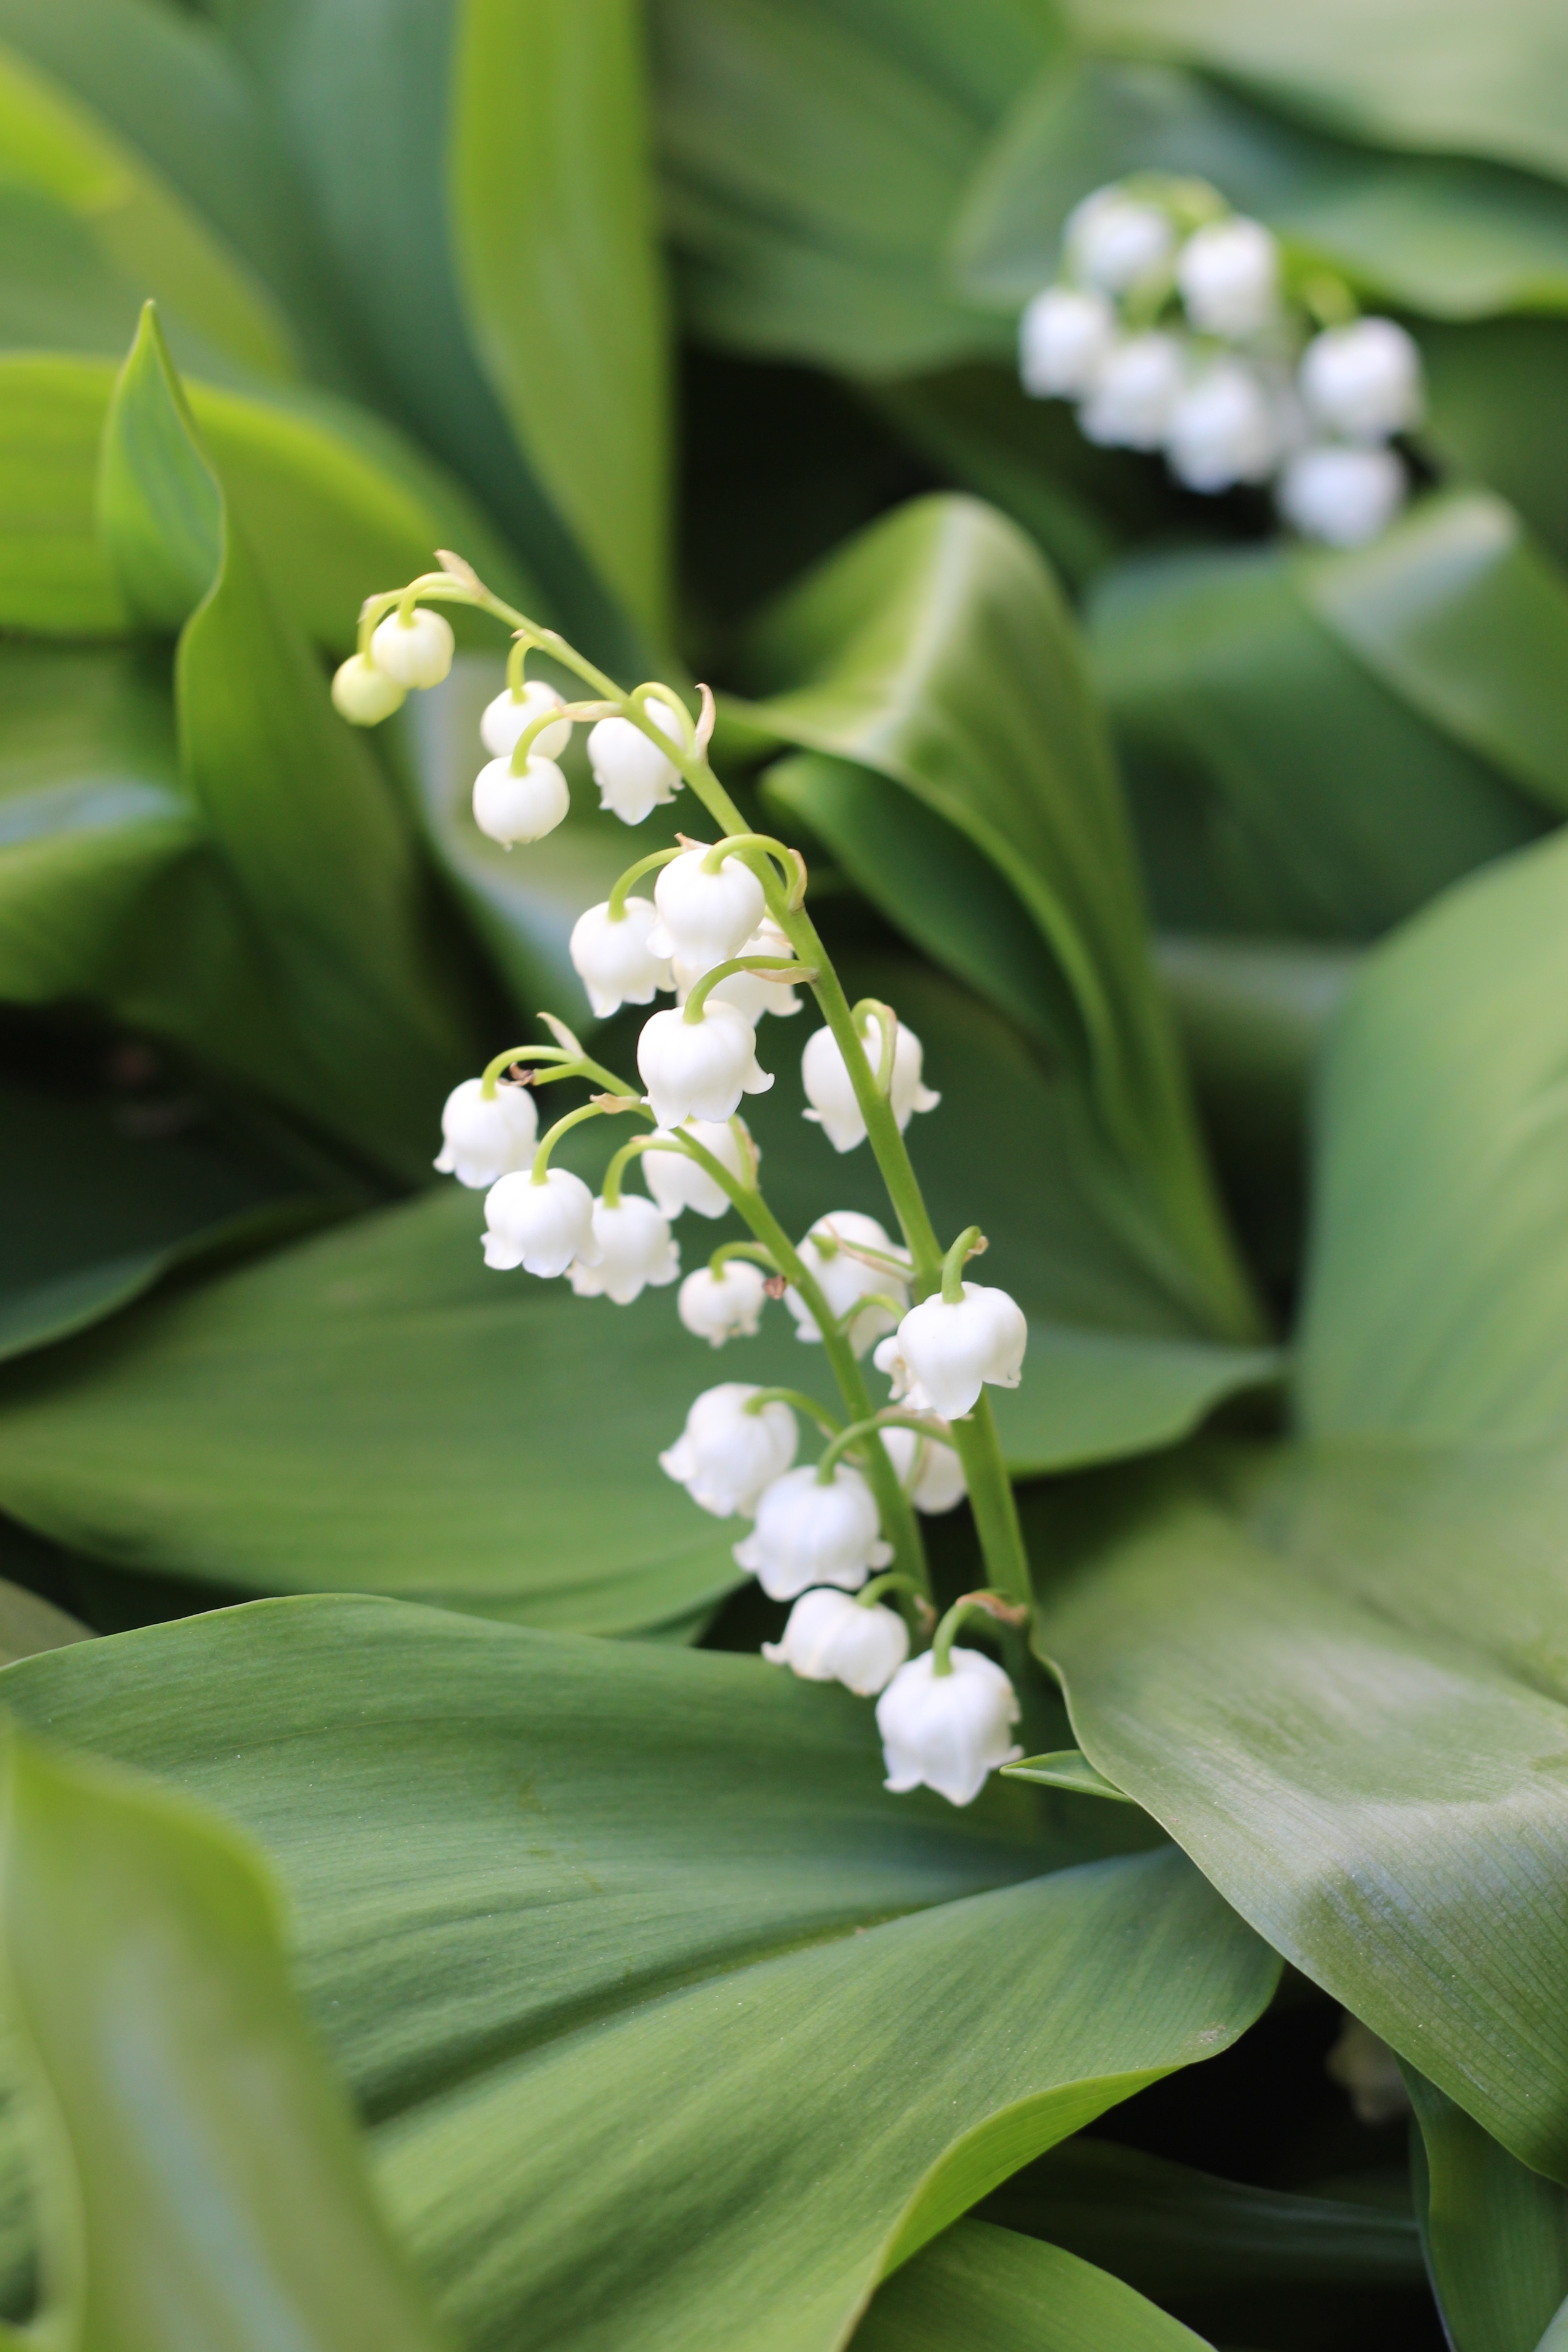 The Lily of the Valley in my garden